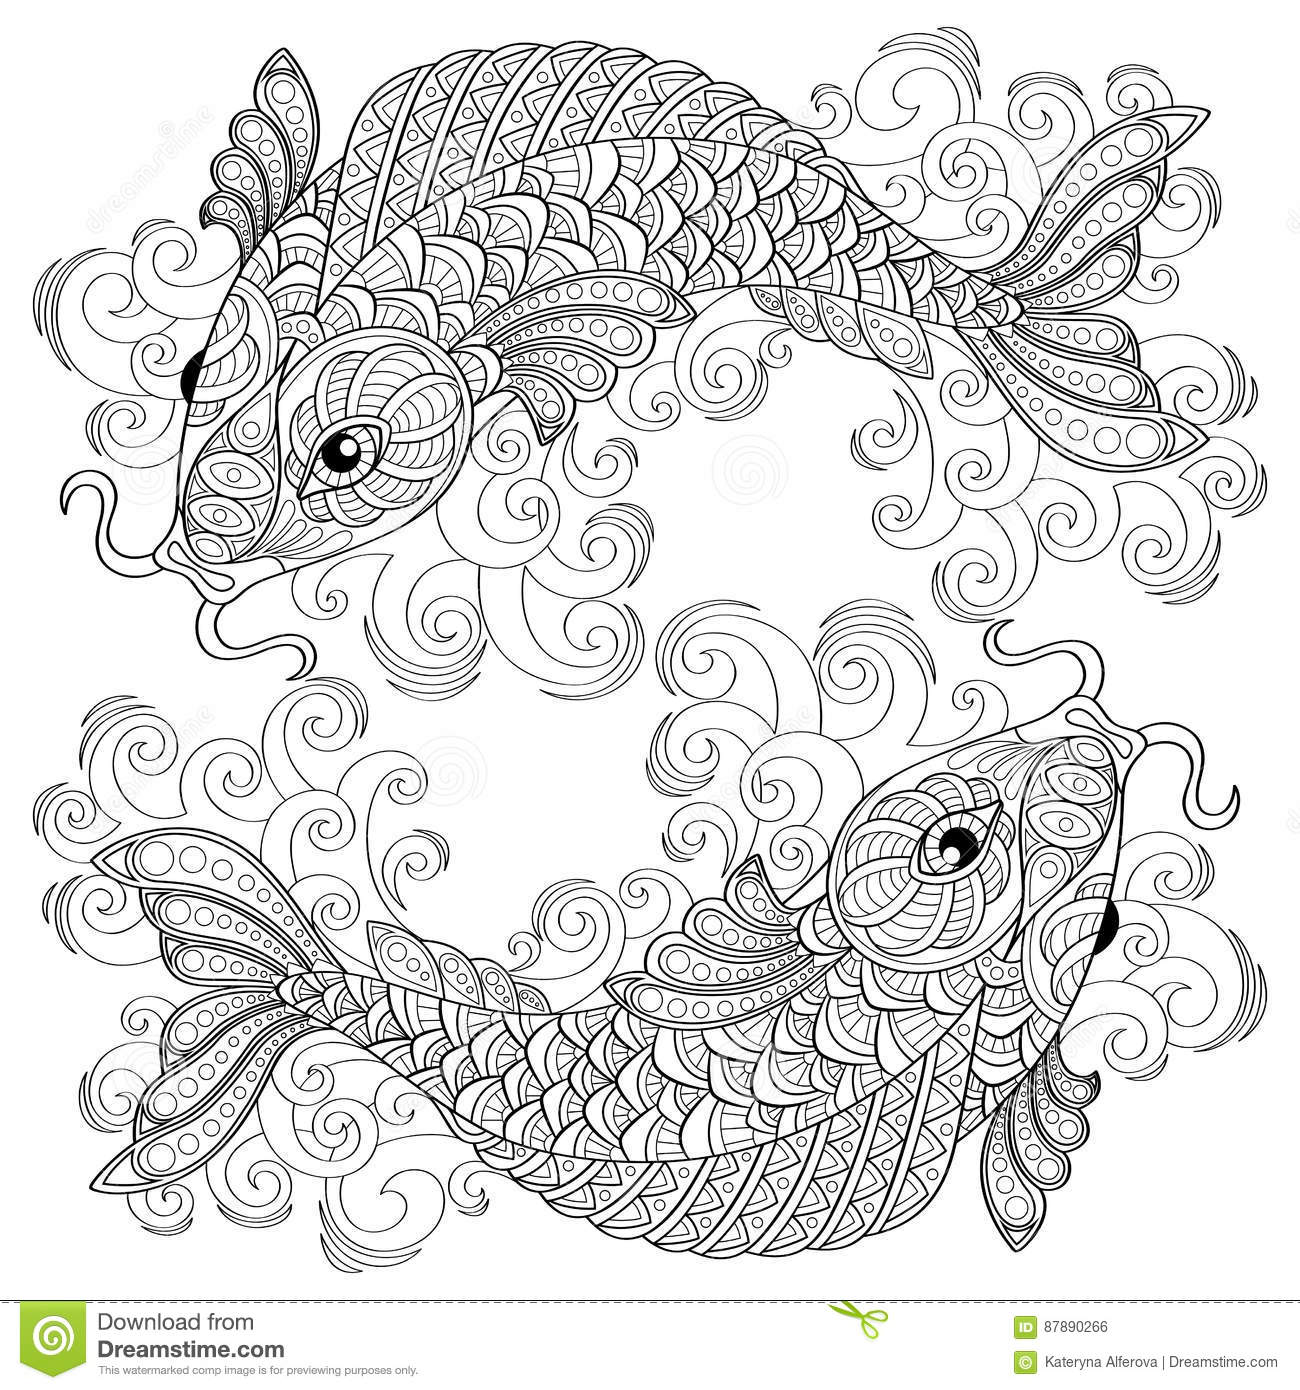 Adult coloring pages black and white ~ Antistress Cartoons, Illustrations & Vector Stock Images ...